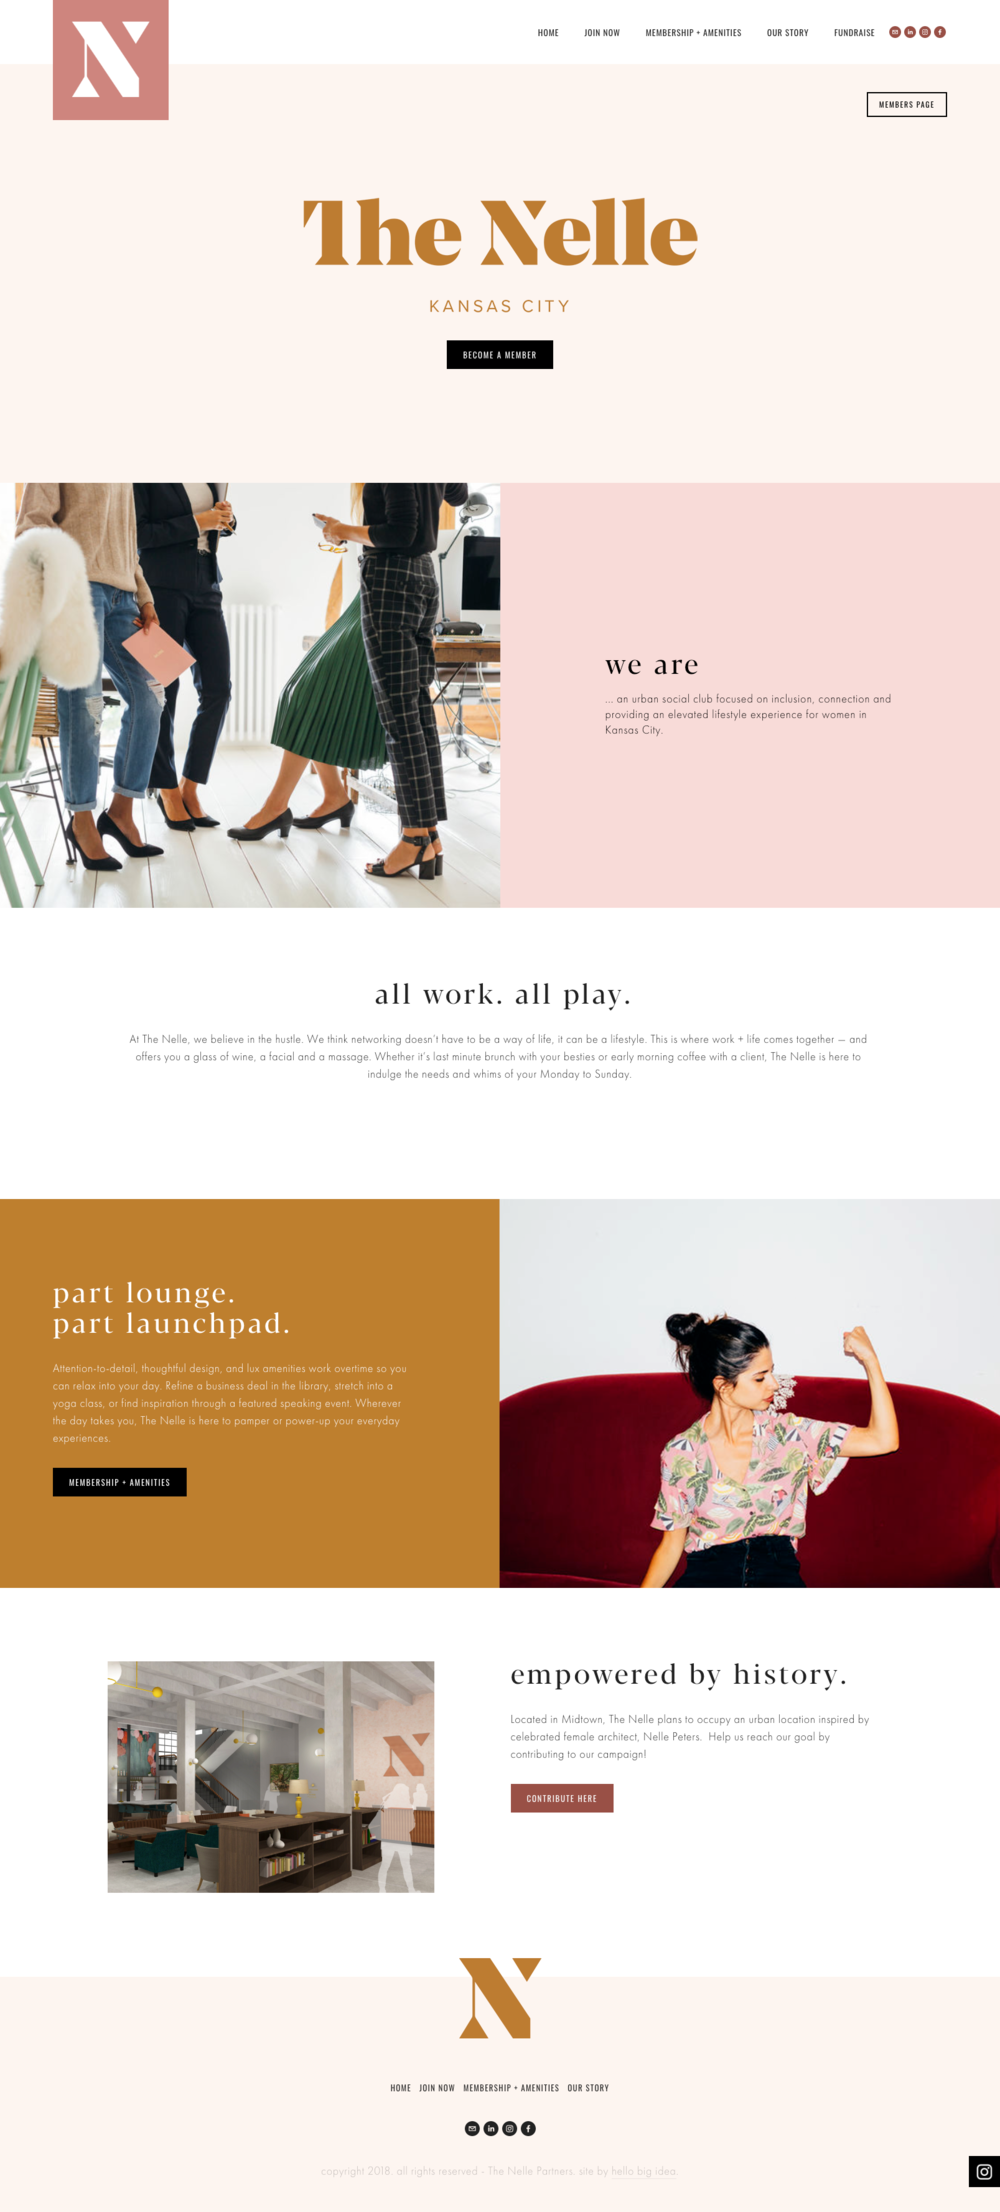 TheNelle-website.png